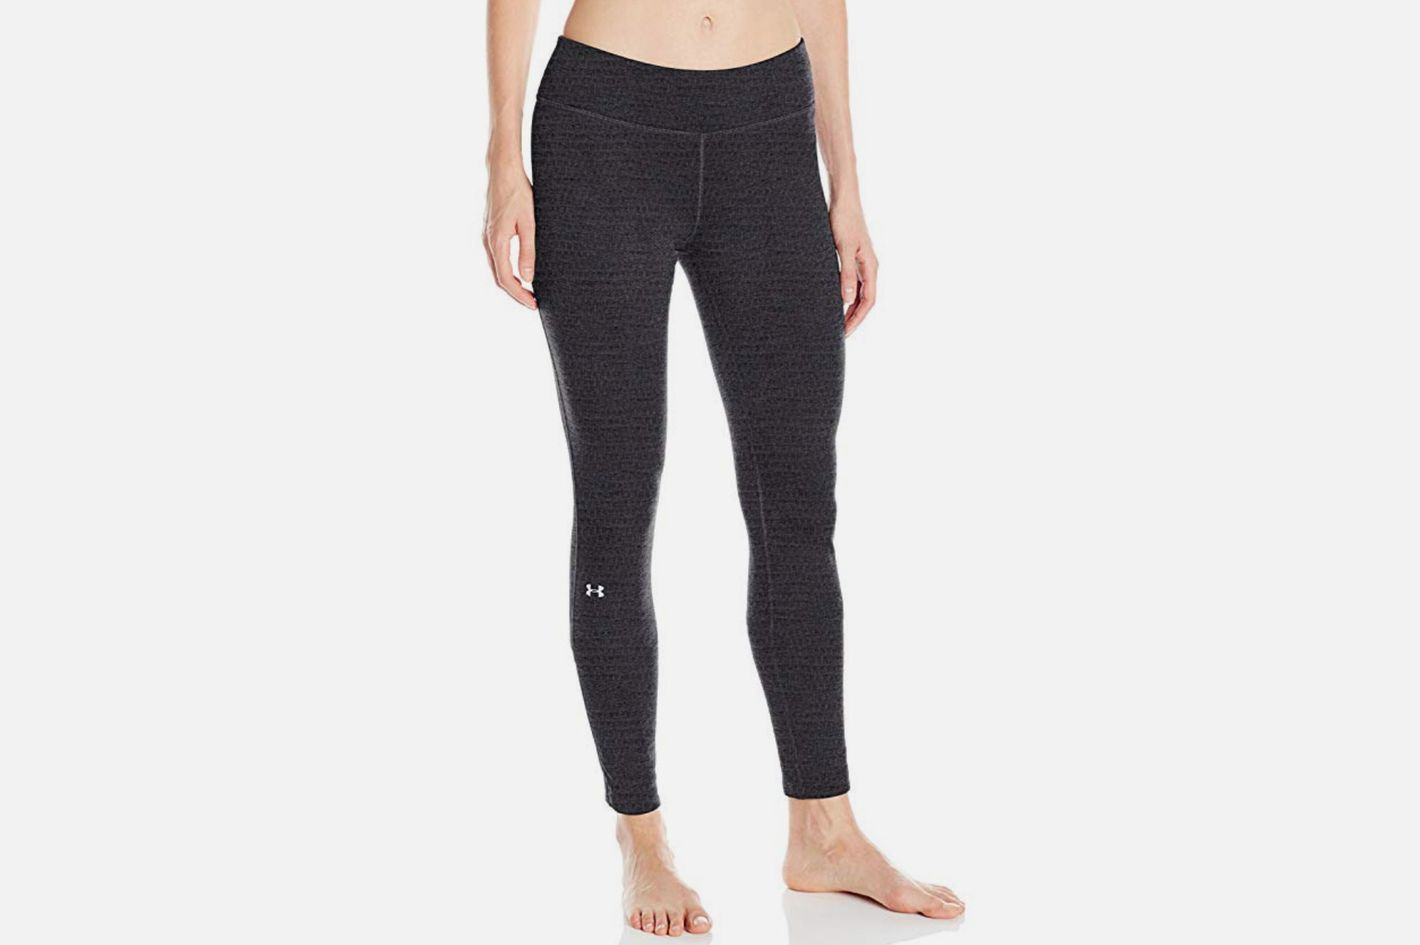 59c834f4203d Under Armour Women's Base 3.0 Leggings at Amazon